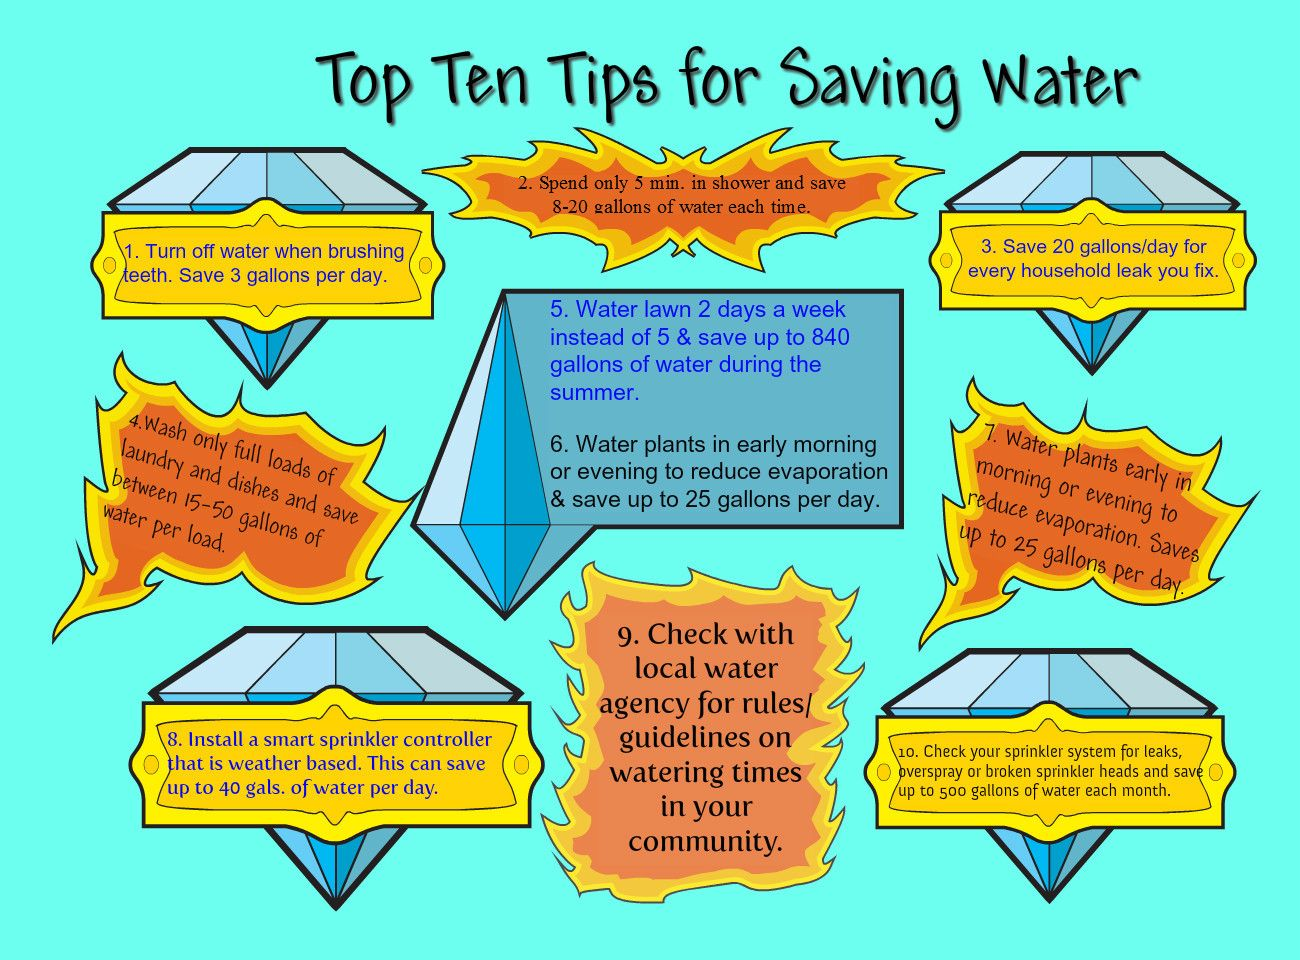 Water conservation tips top ten tips for saving water by for How to save water in your house